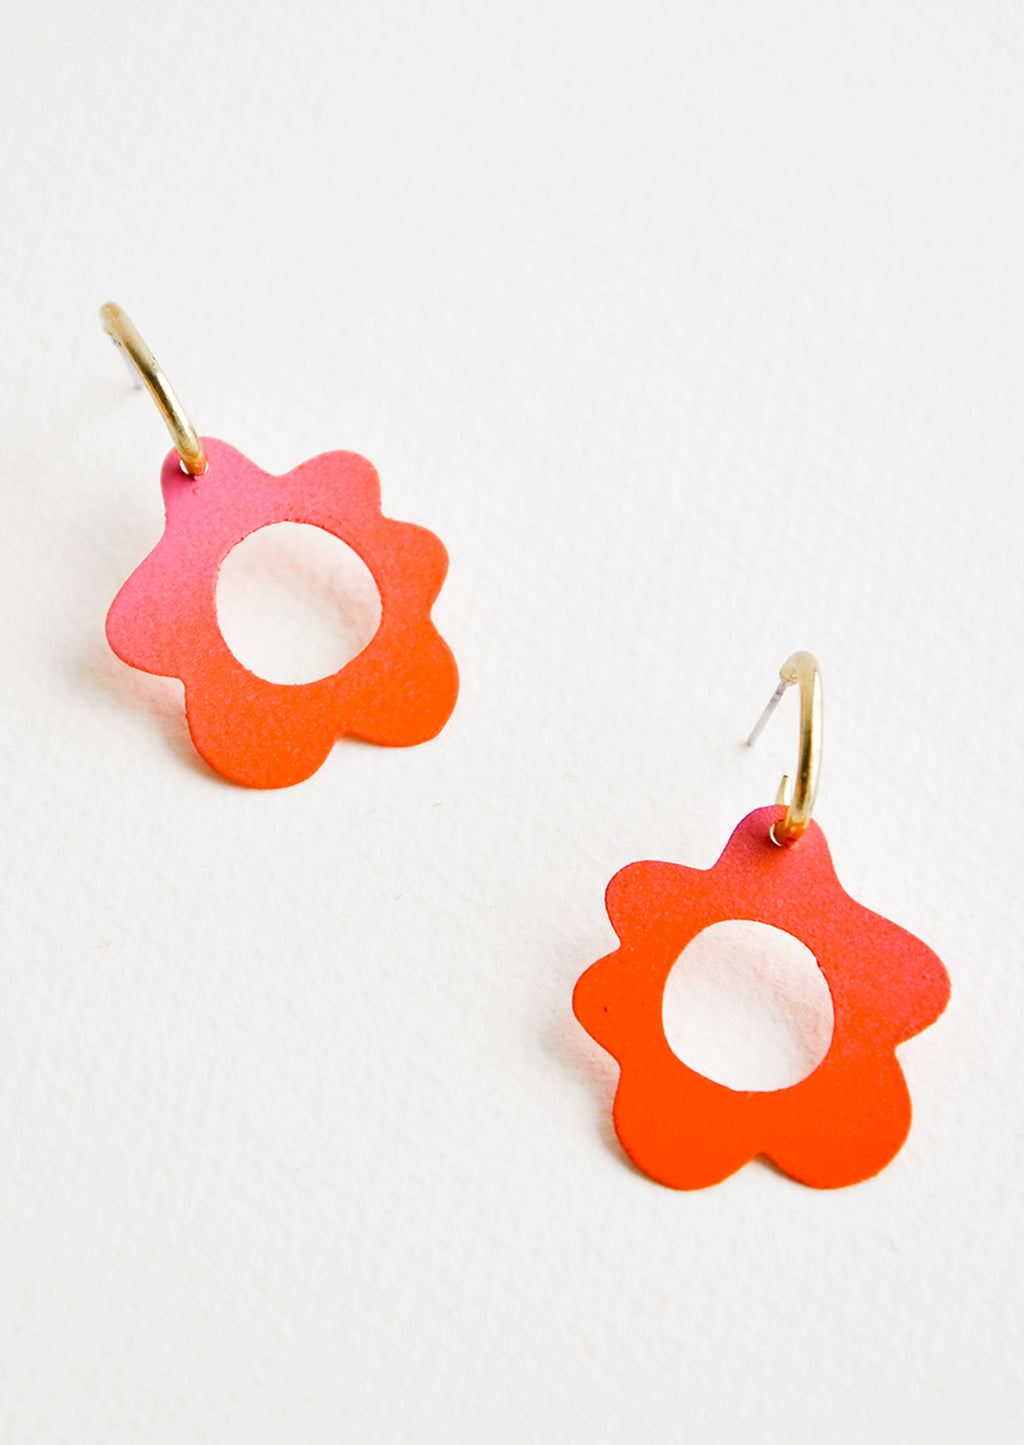 Coral Ombre: Coral flower shaped earrings with circular cutouts on small brass open hoops.